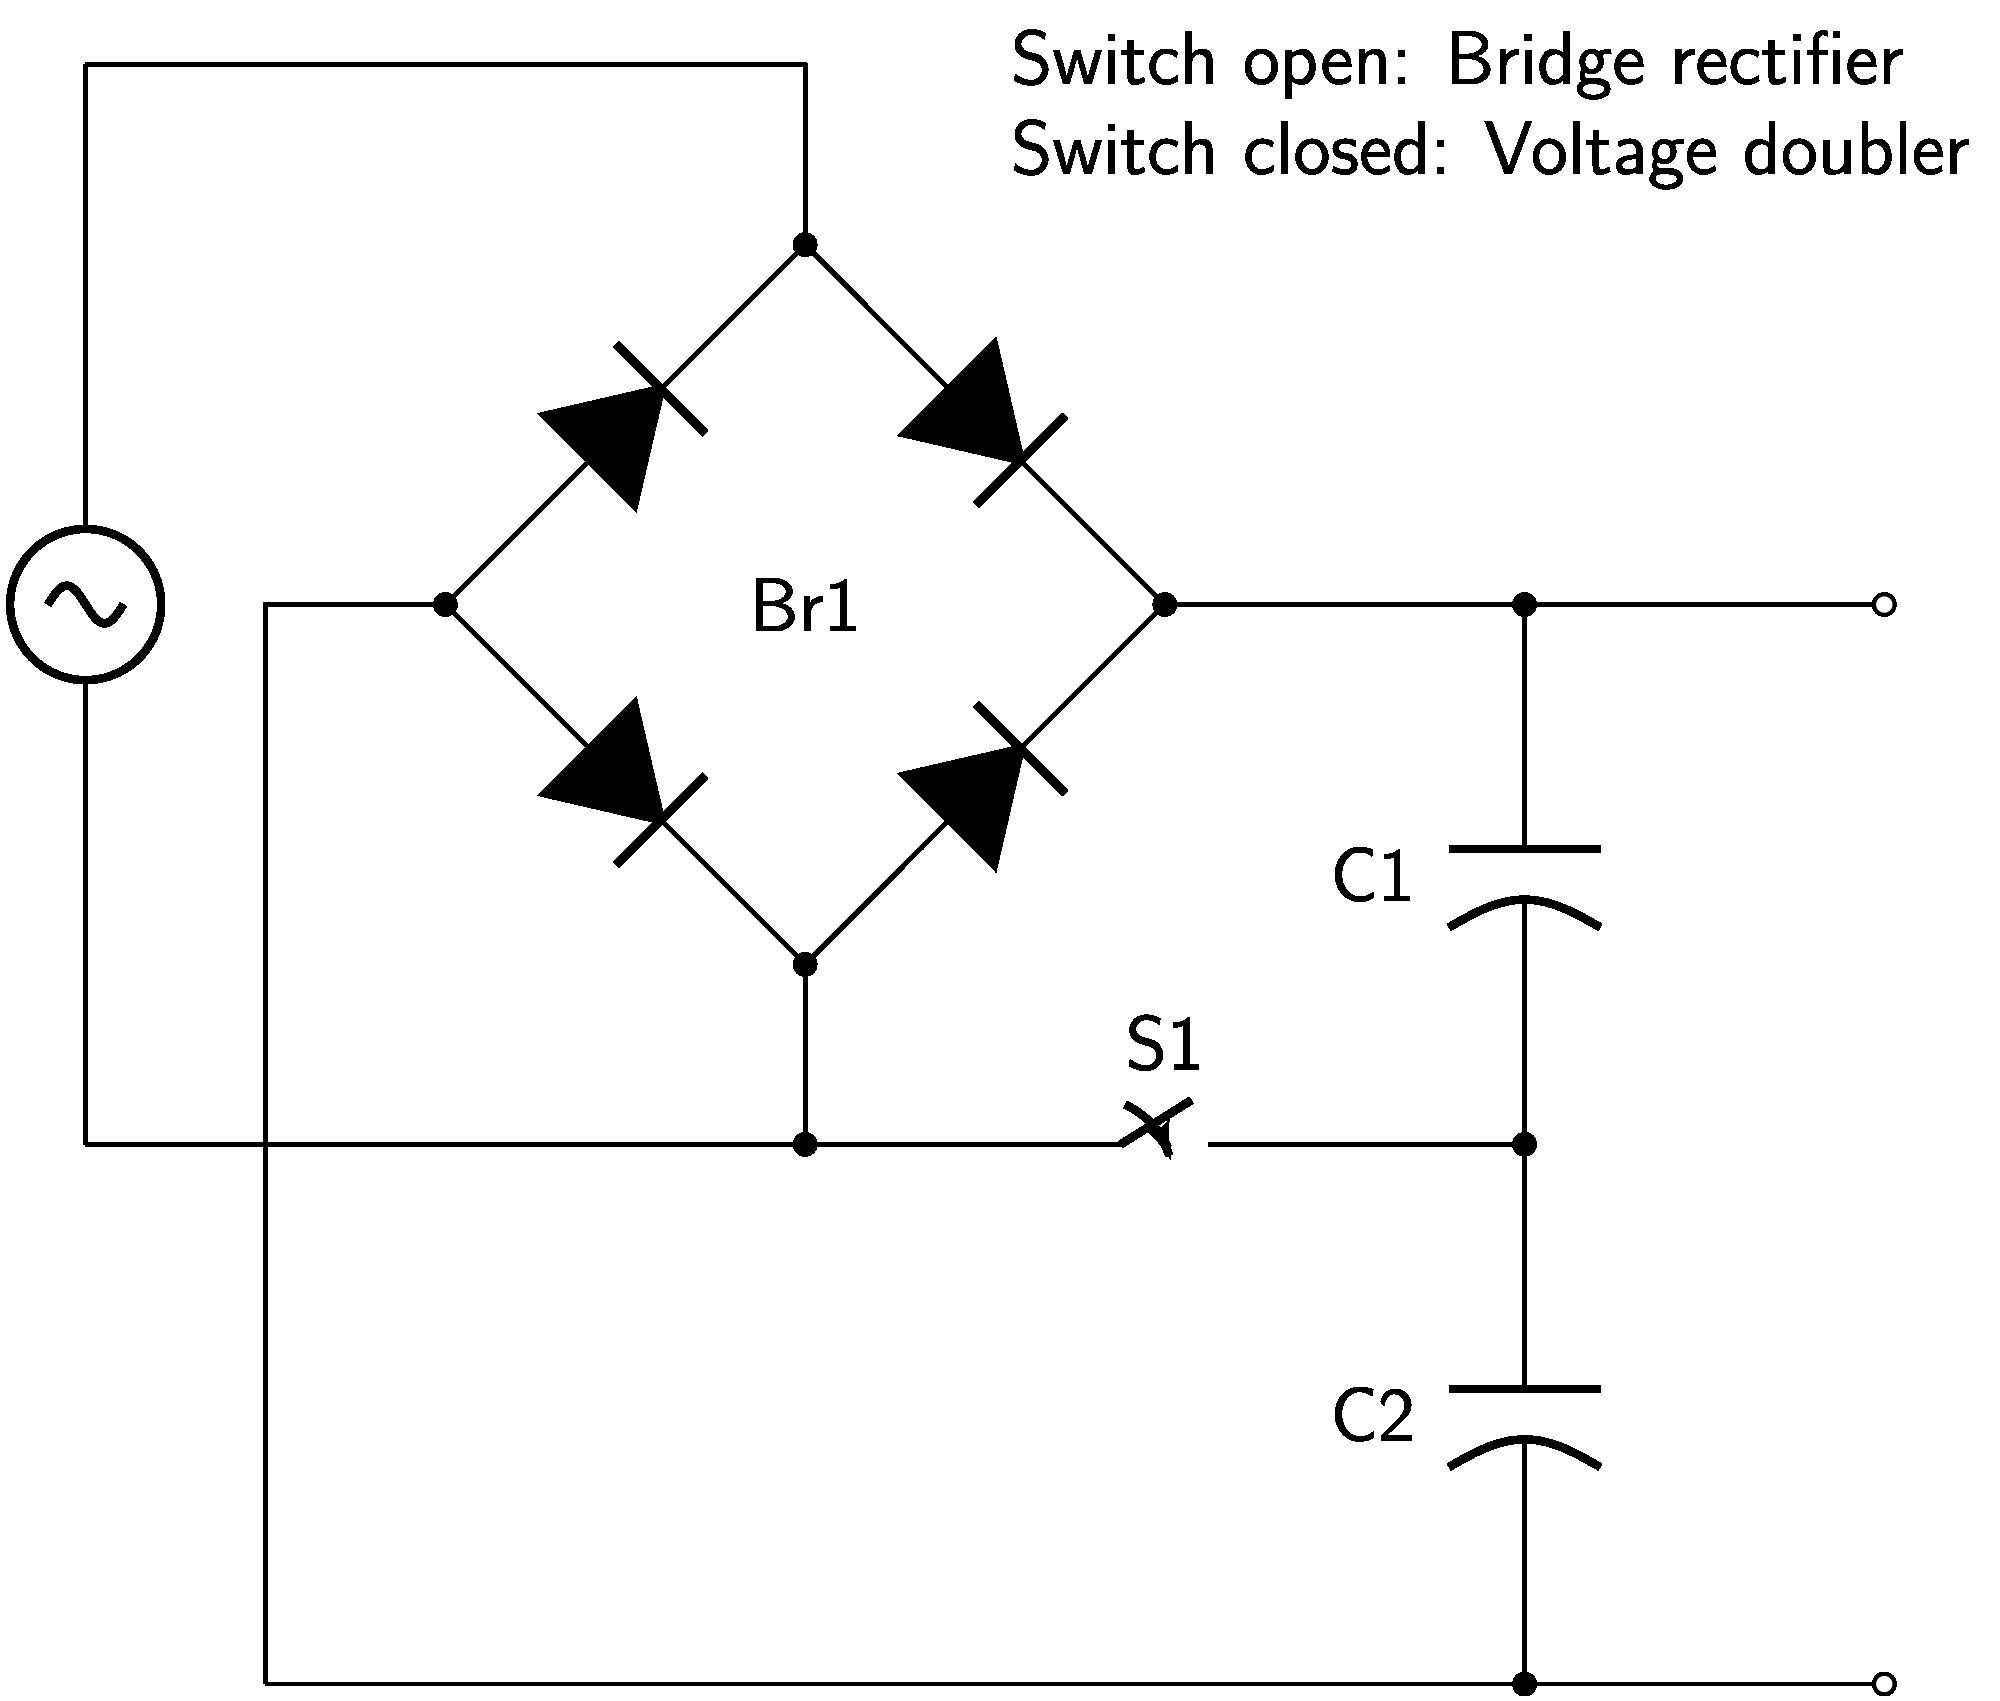 hight resolution of way bridge rectifier wiring diagram components tube unusual kbpc3510 inside wiring diagram bridge rectifier